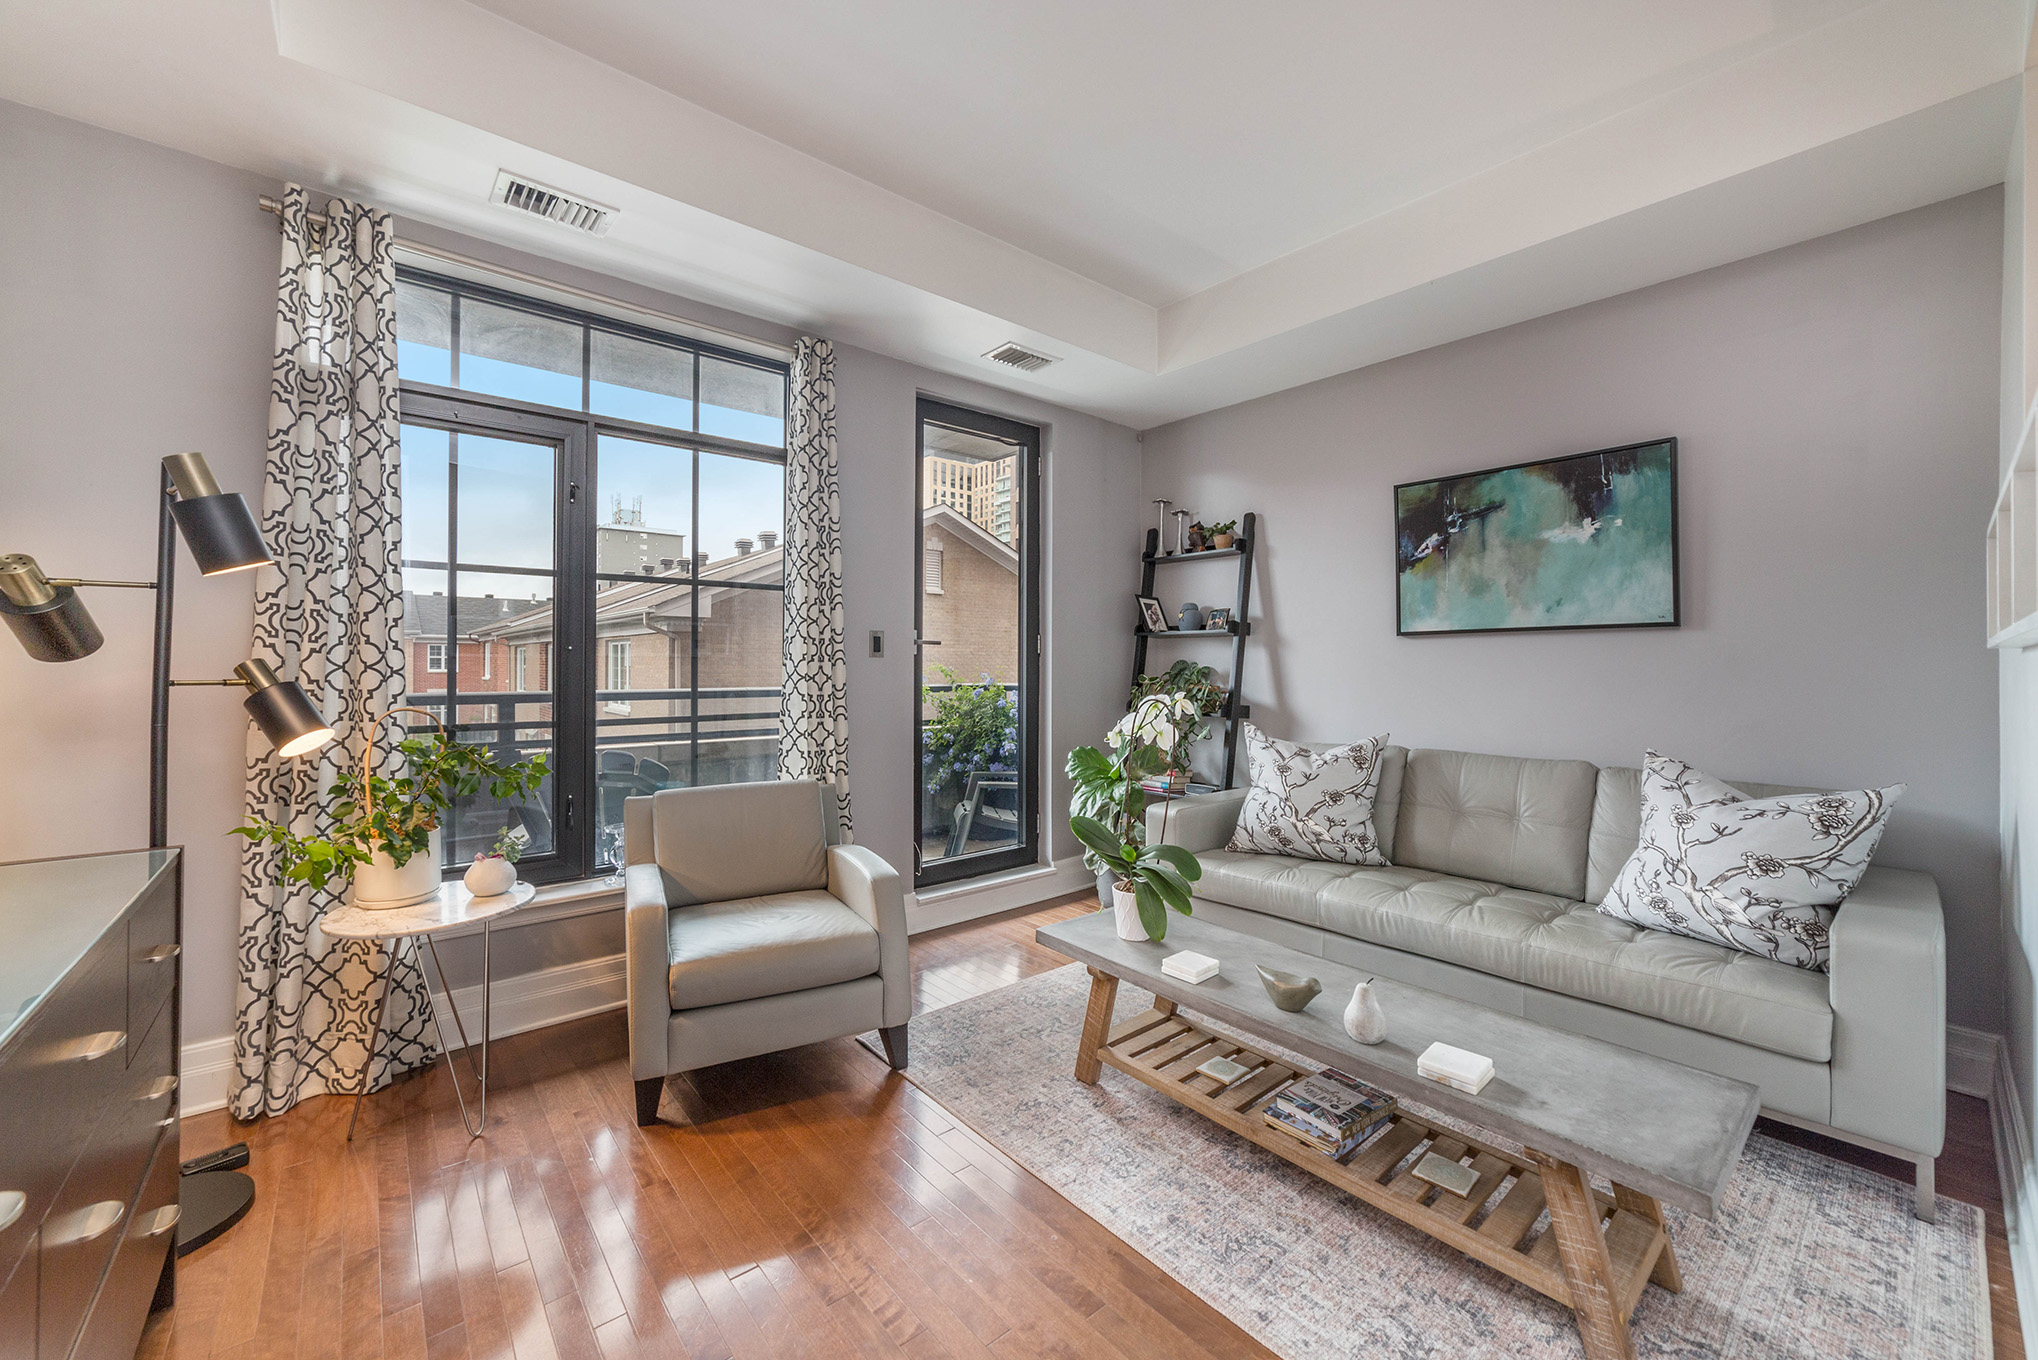 Bright living space with large windows and door heading out to a private balcony